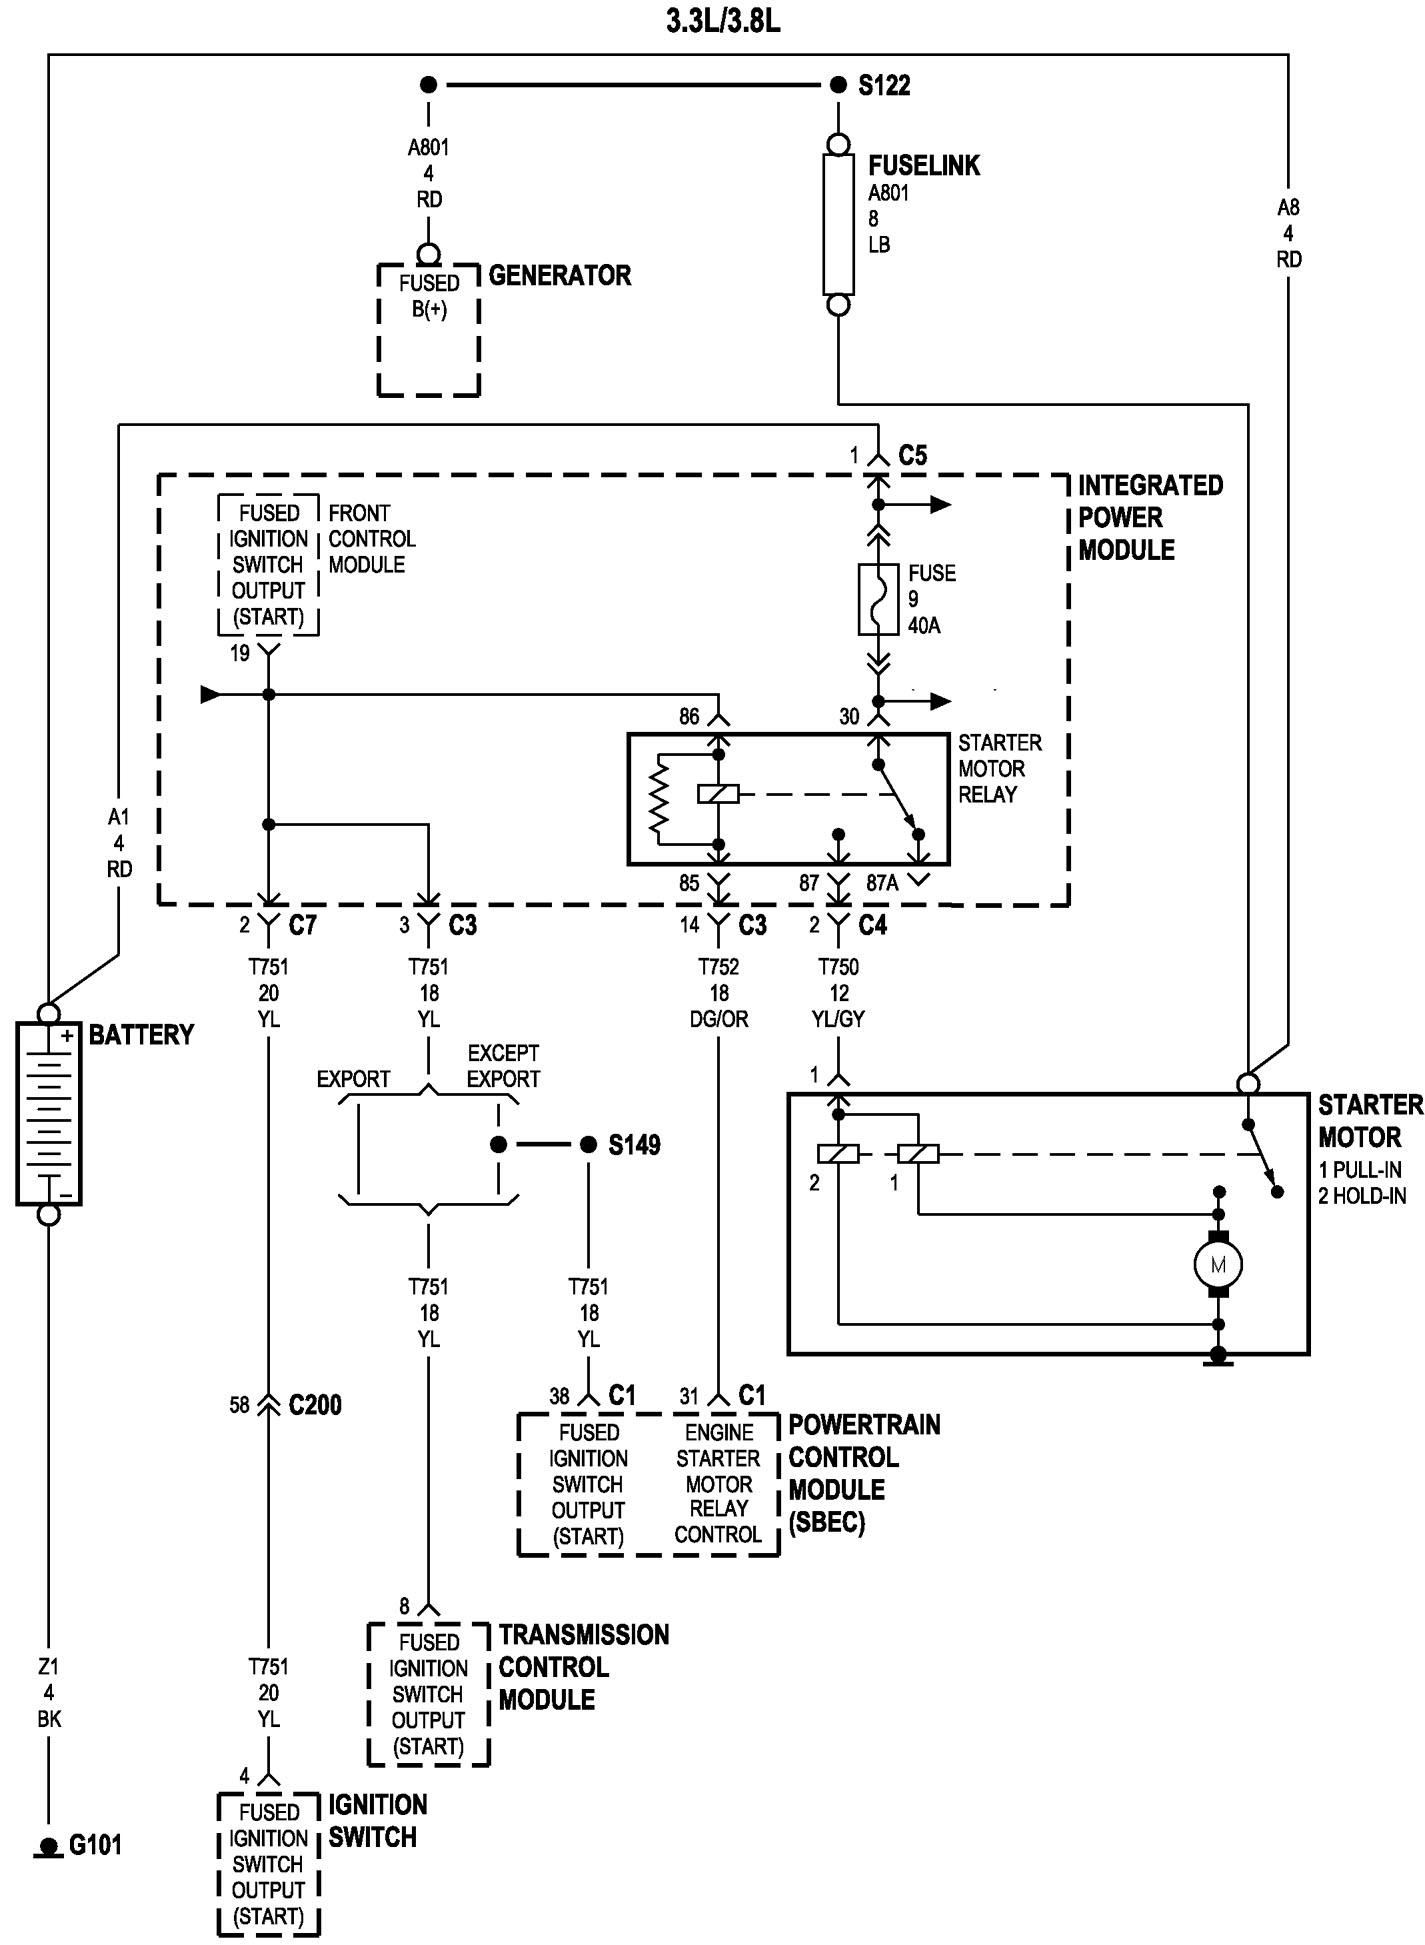 Voyager Camera Wiring Diagram from diagramweb.net